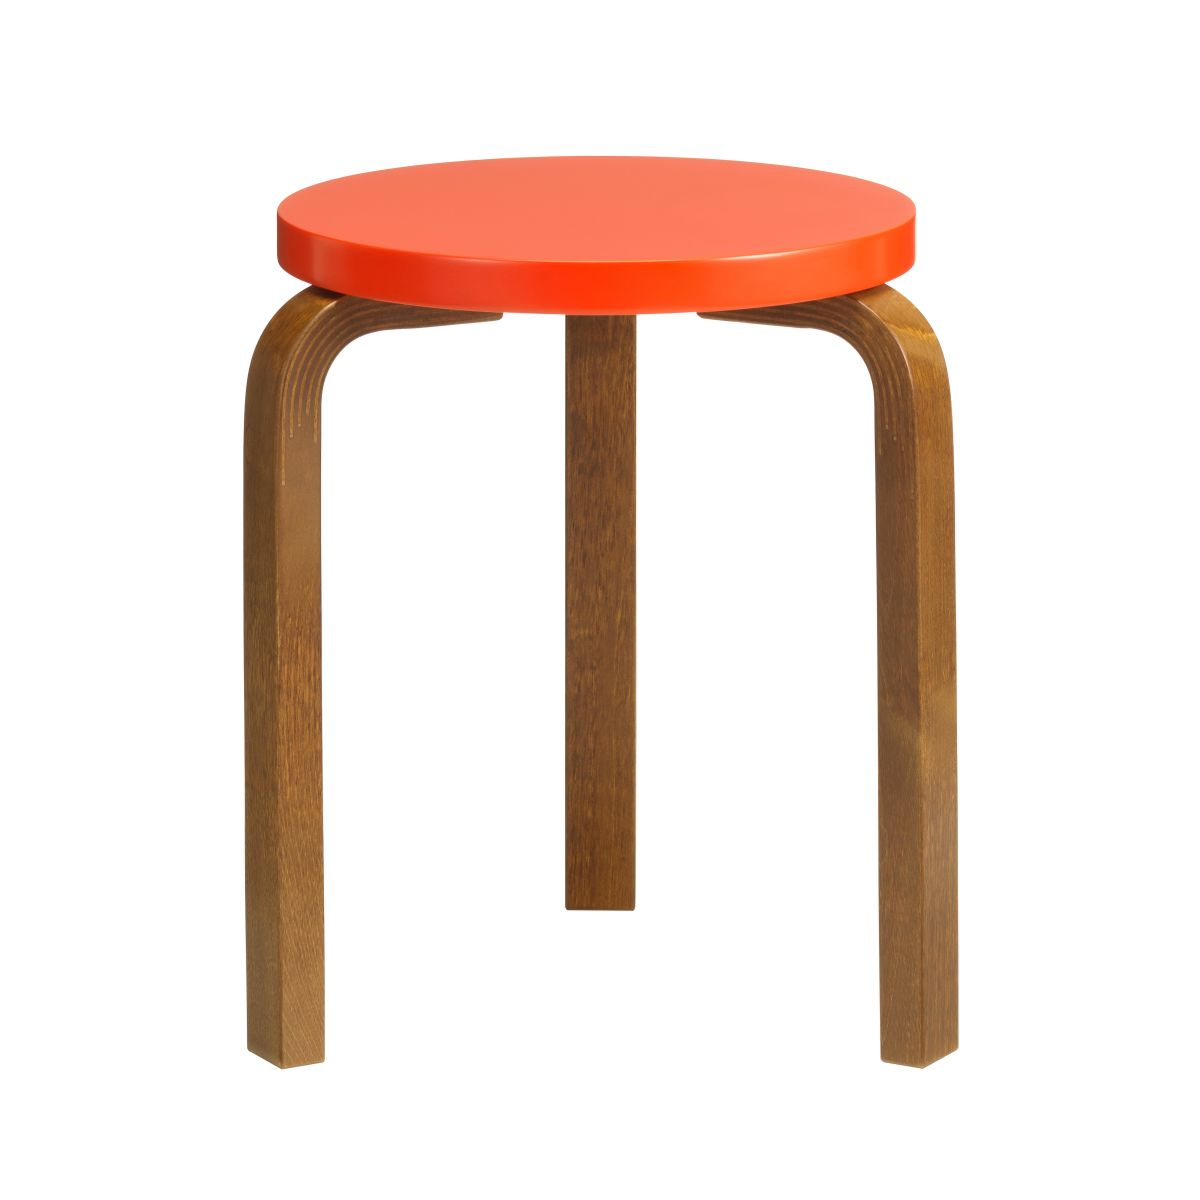 Stool_60_Walnut_Stain_Bright_Red_Lacquer_F-2243636